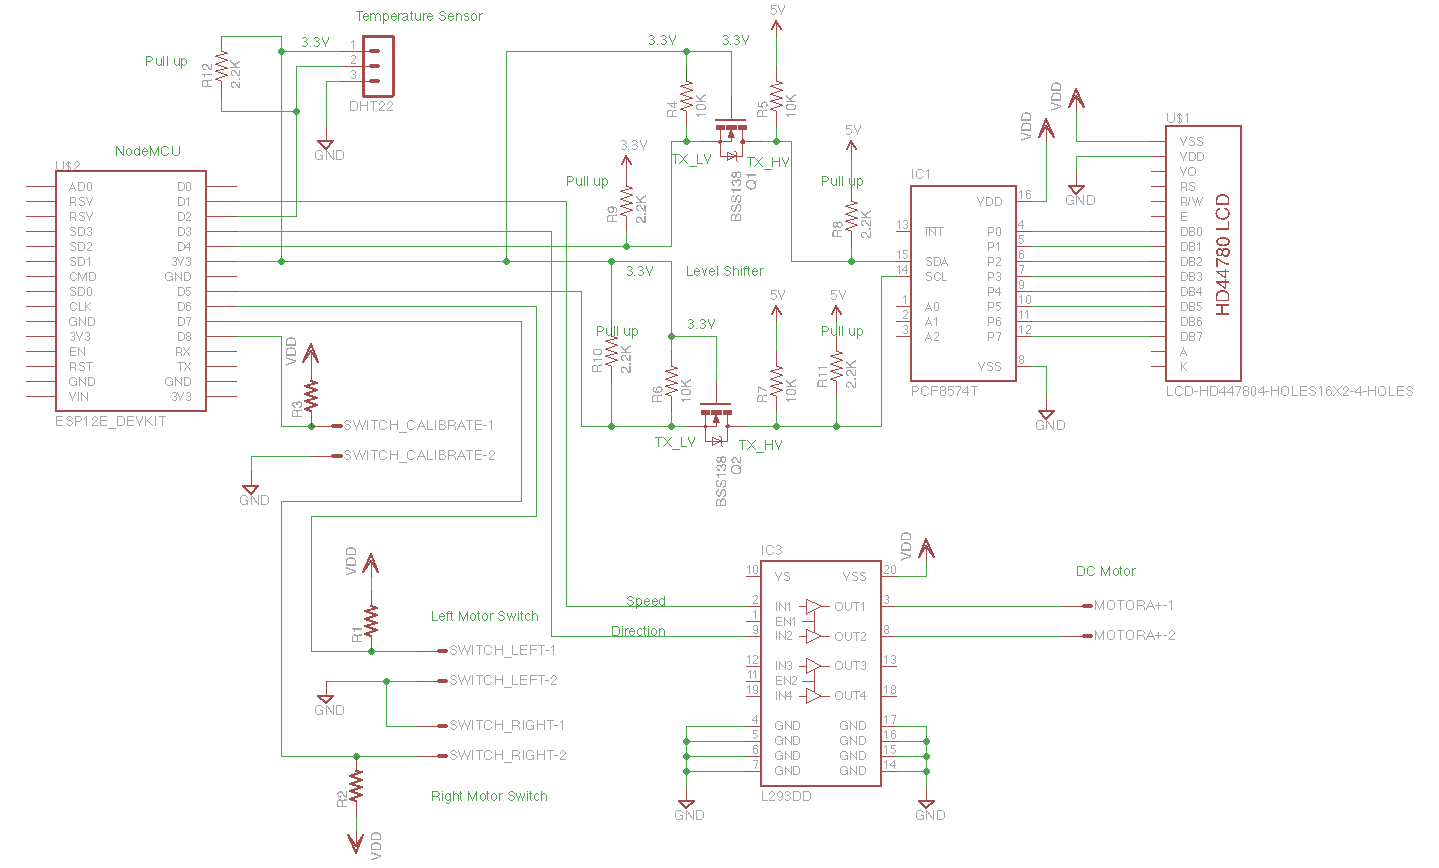 3306701453987822208 incubator controller hackaday io Single Phase Motor Wiring Diagrams at cos-gaming.co